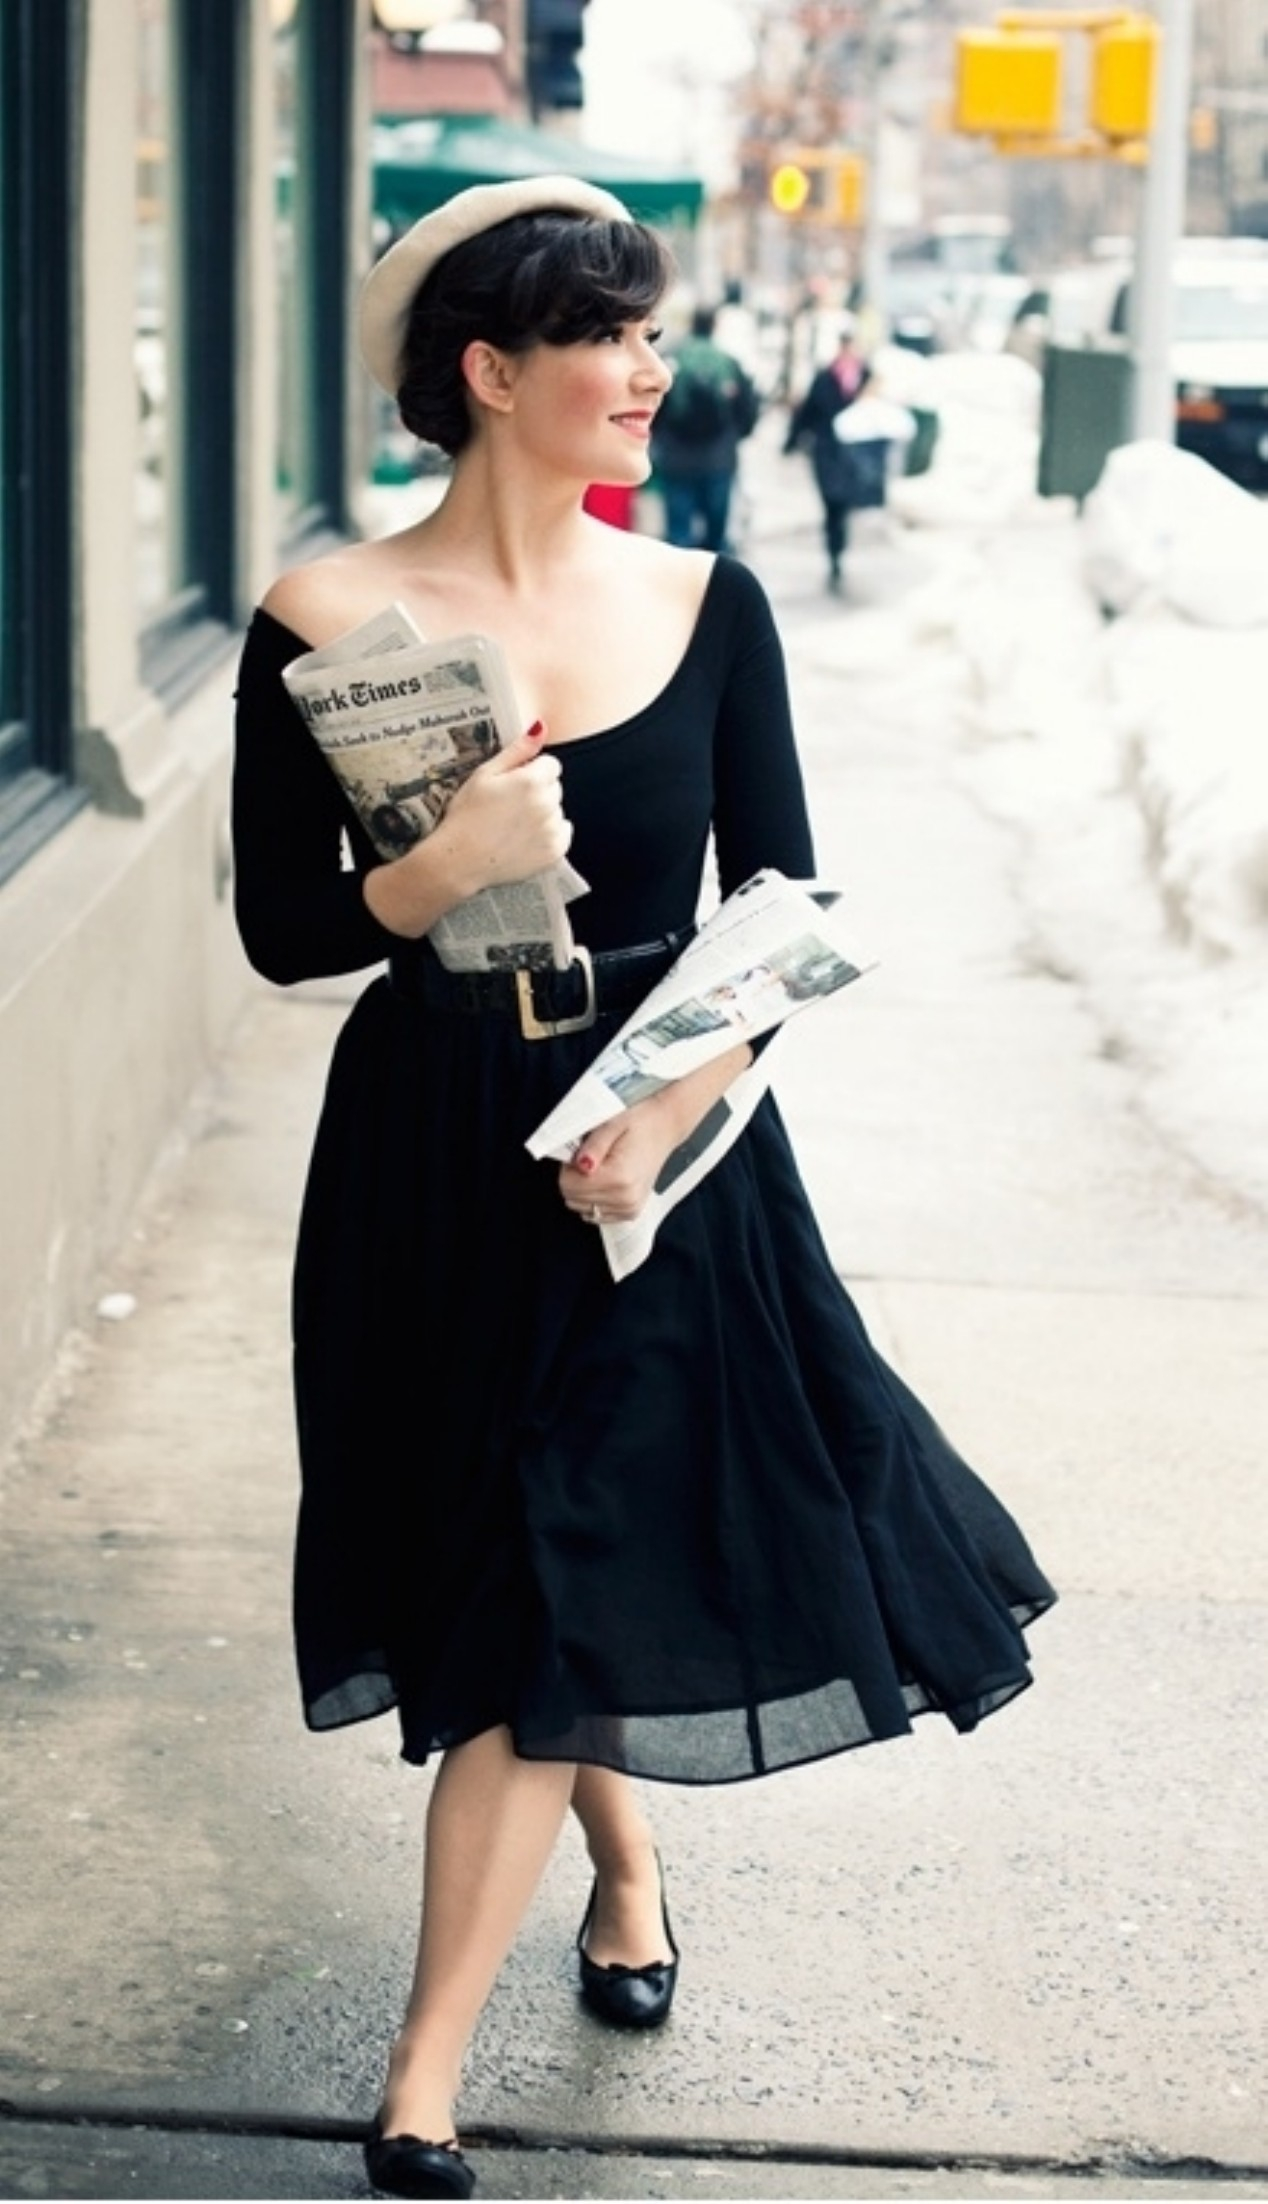 Awesome-Summer-French-Street-Style-Looks-Idea-40.jpg